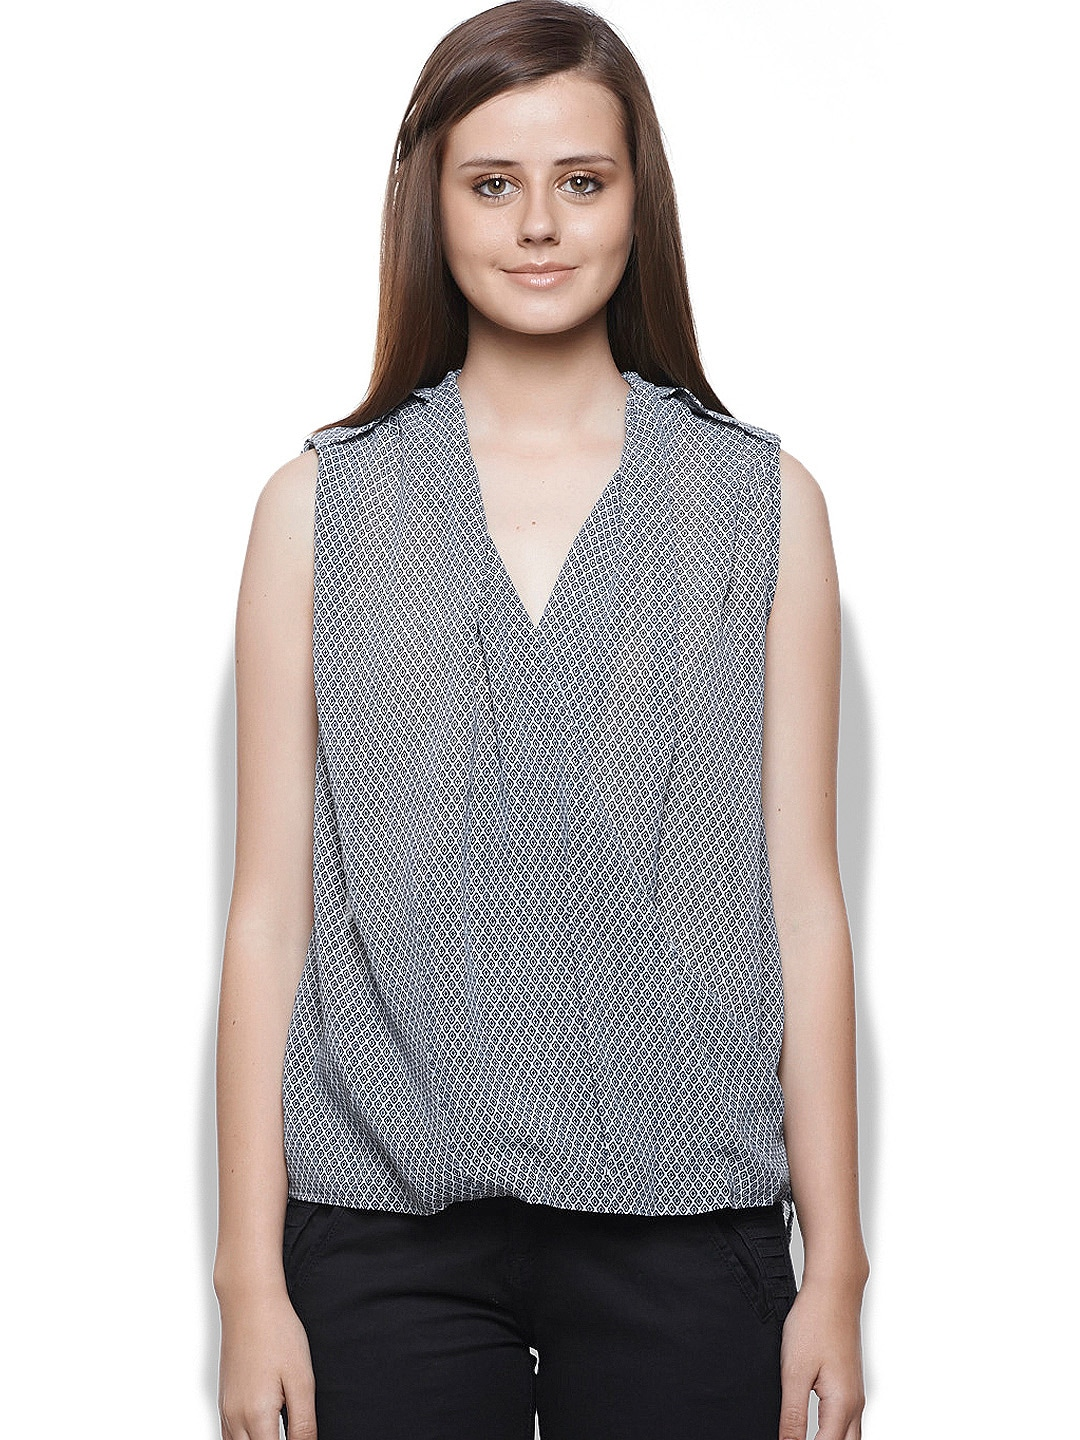 United Colors of Benetton Women White & Black Printed Top